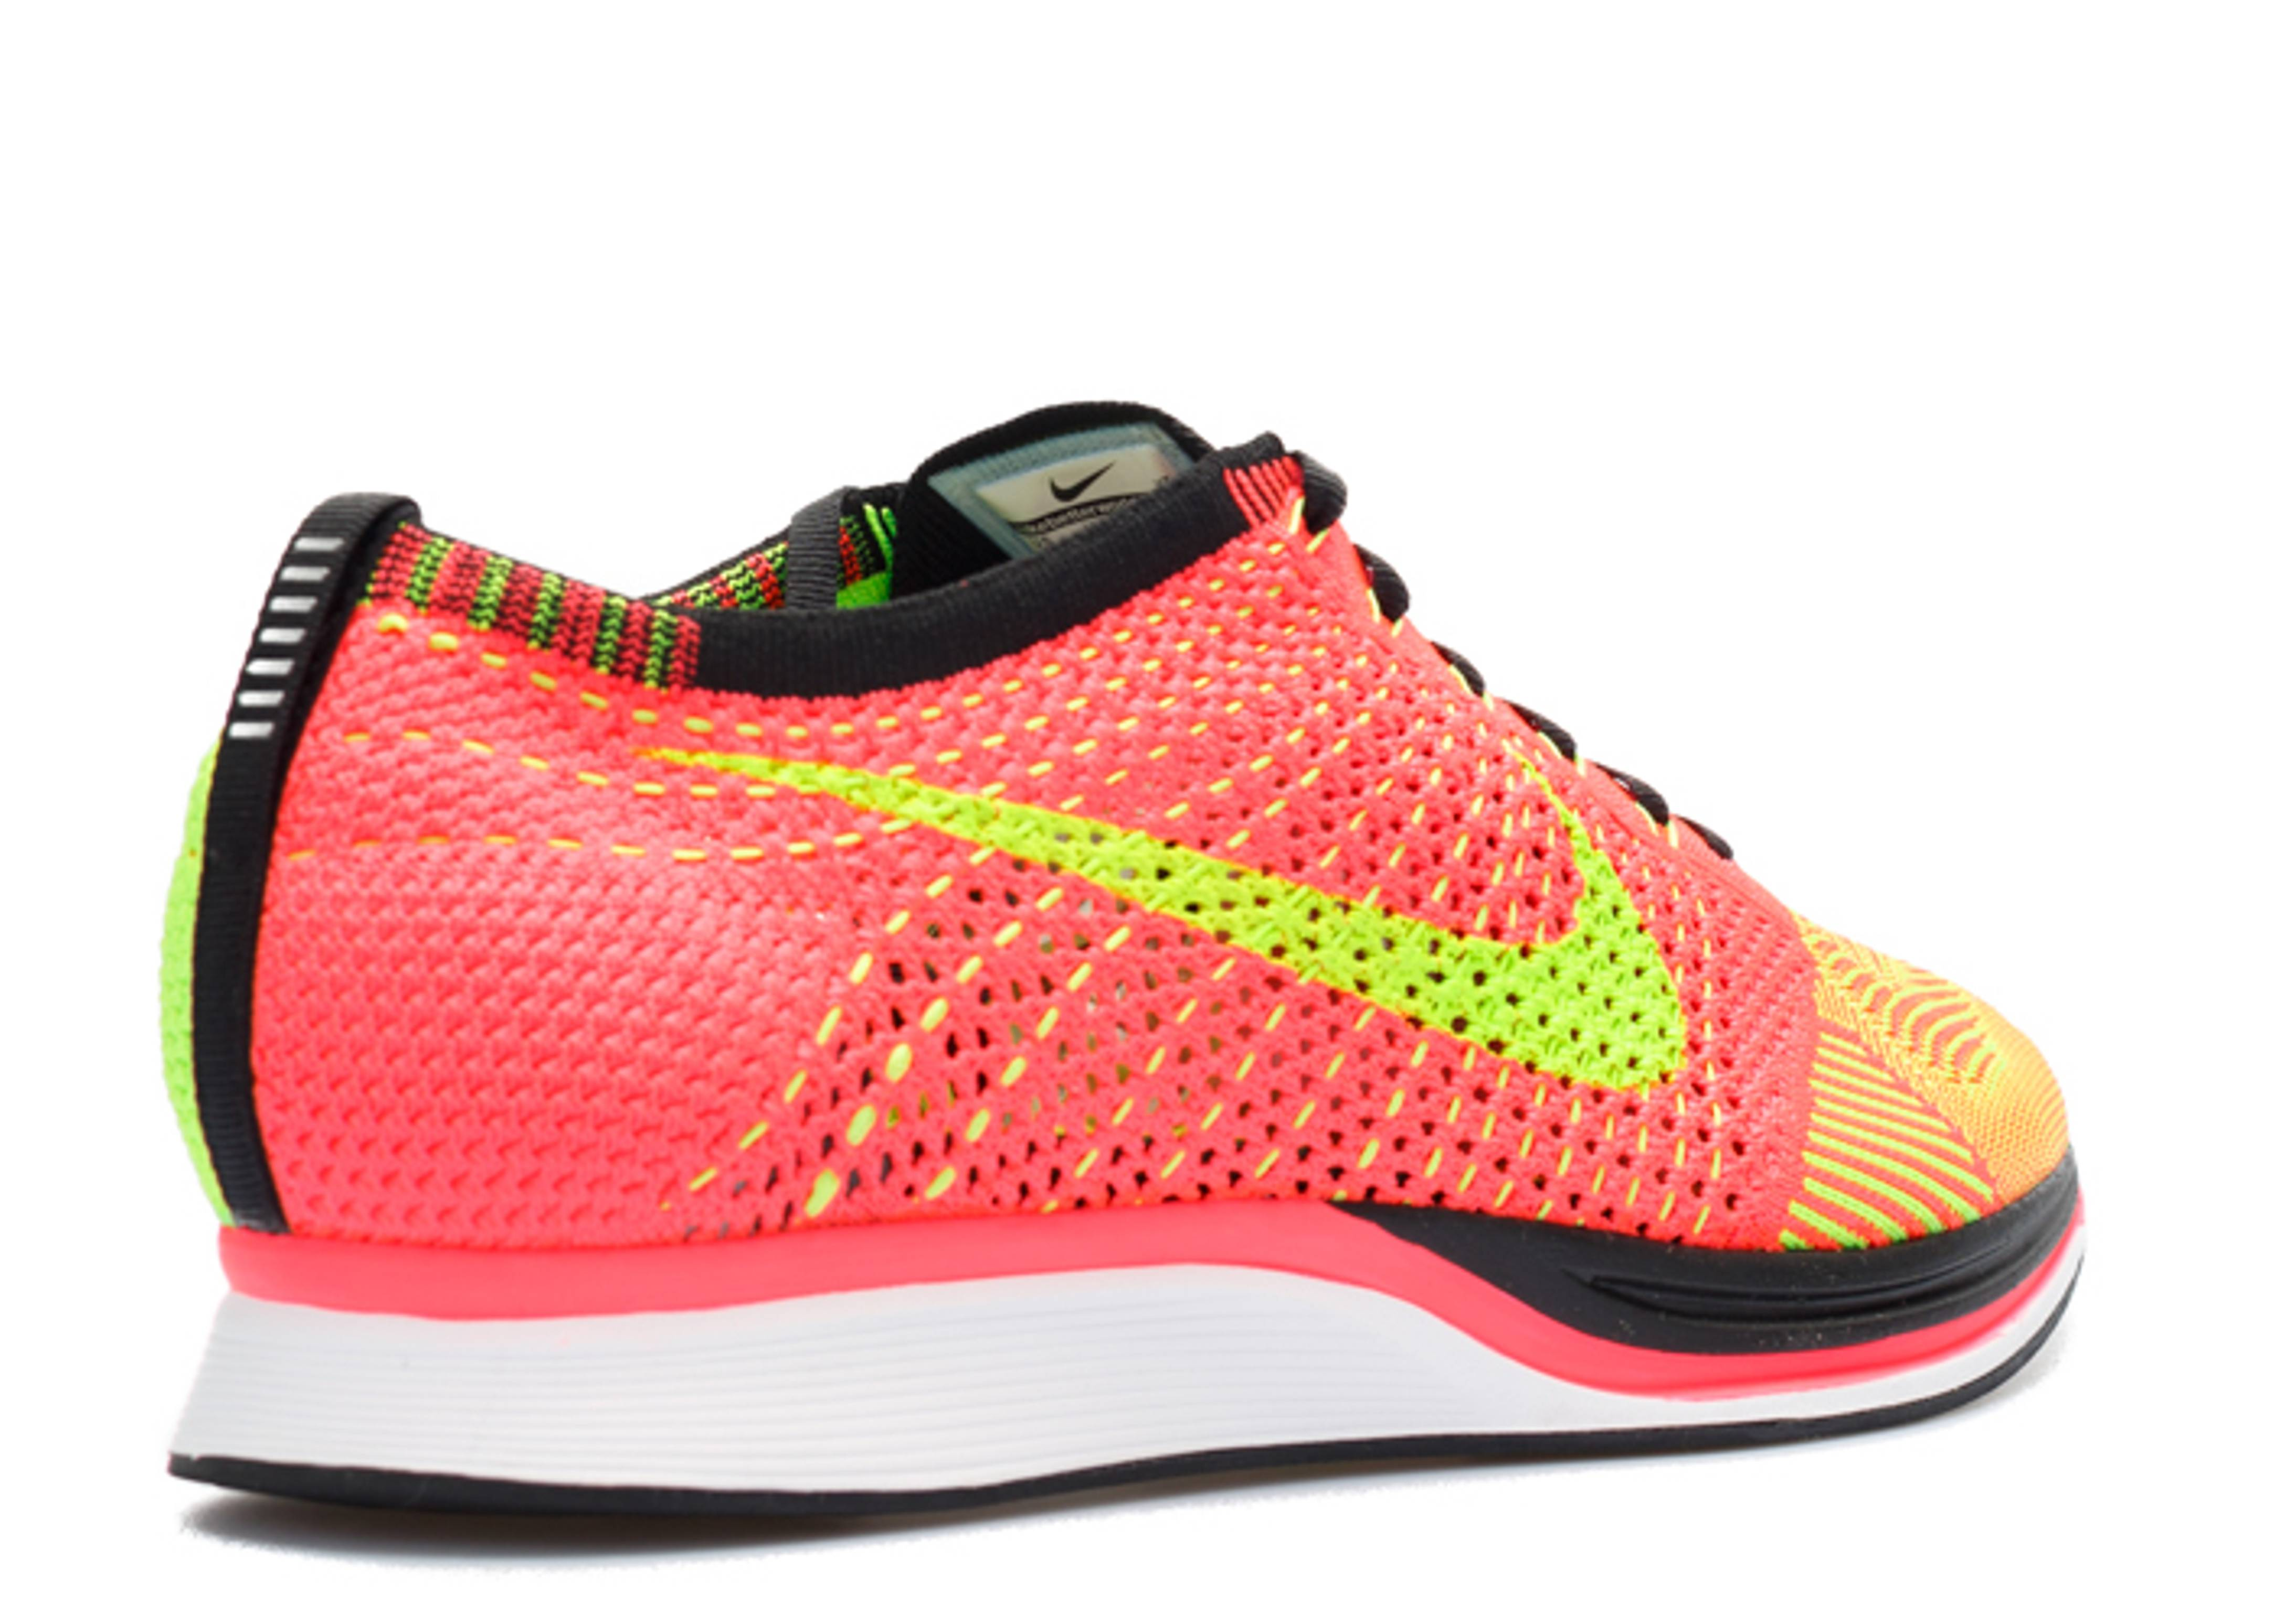 finest selection 6ad6f 0f305 ... price nike. flyknit racer 5f28f 1ff0f best price nike. flyknit racer  5f28f 1ff0f  low price nike flyknit racer hyper punch black electric green  526628 ...